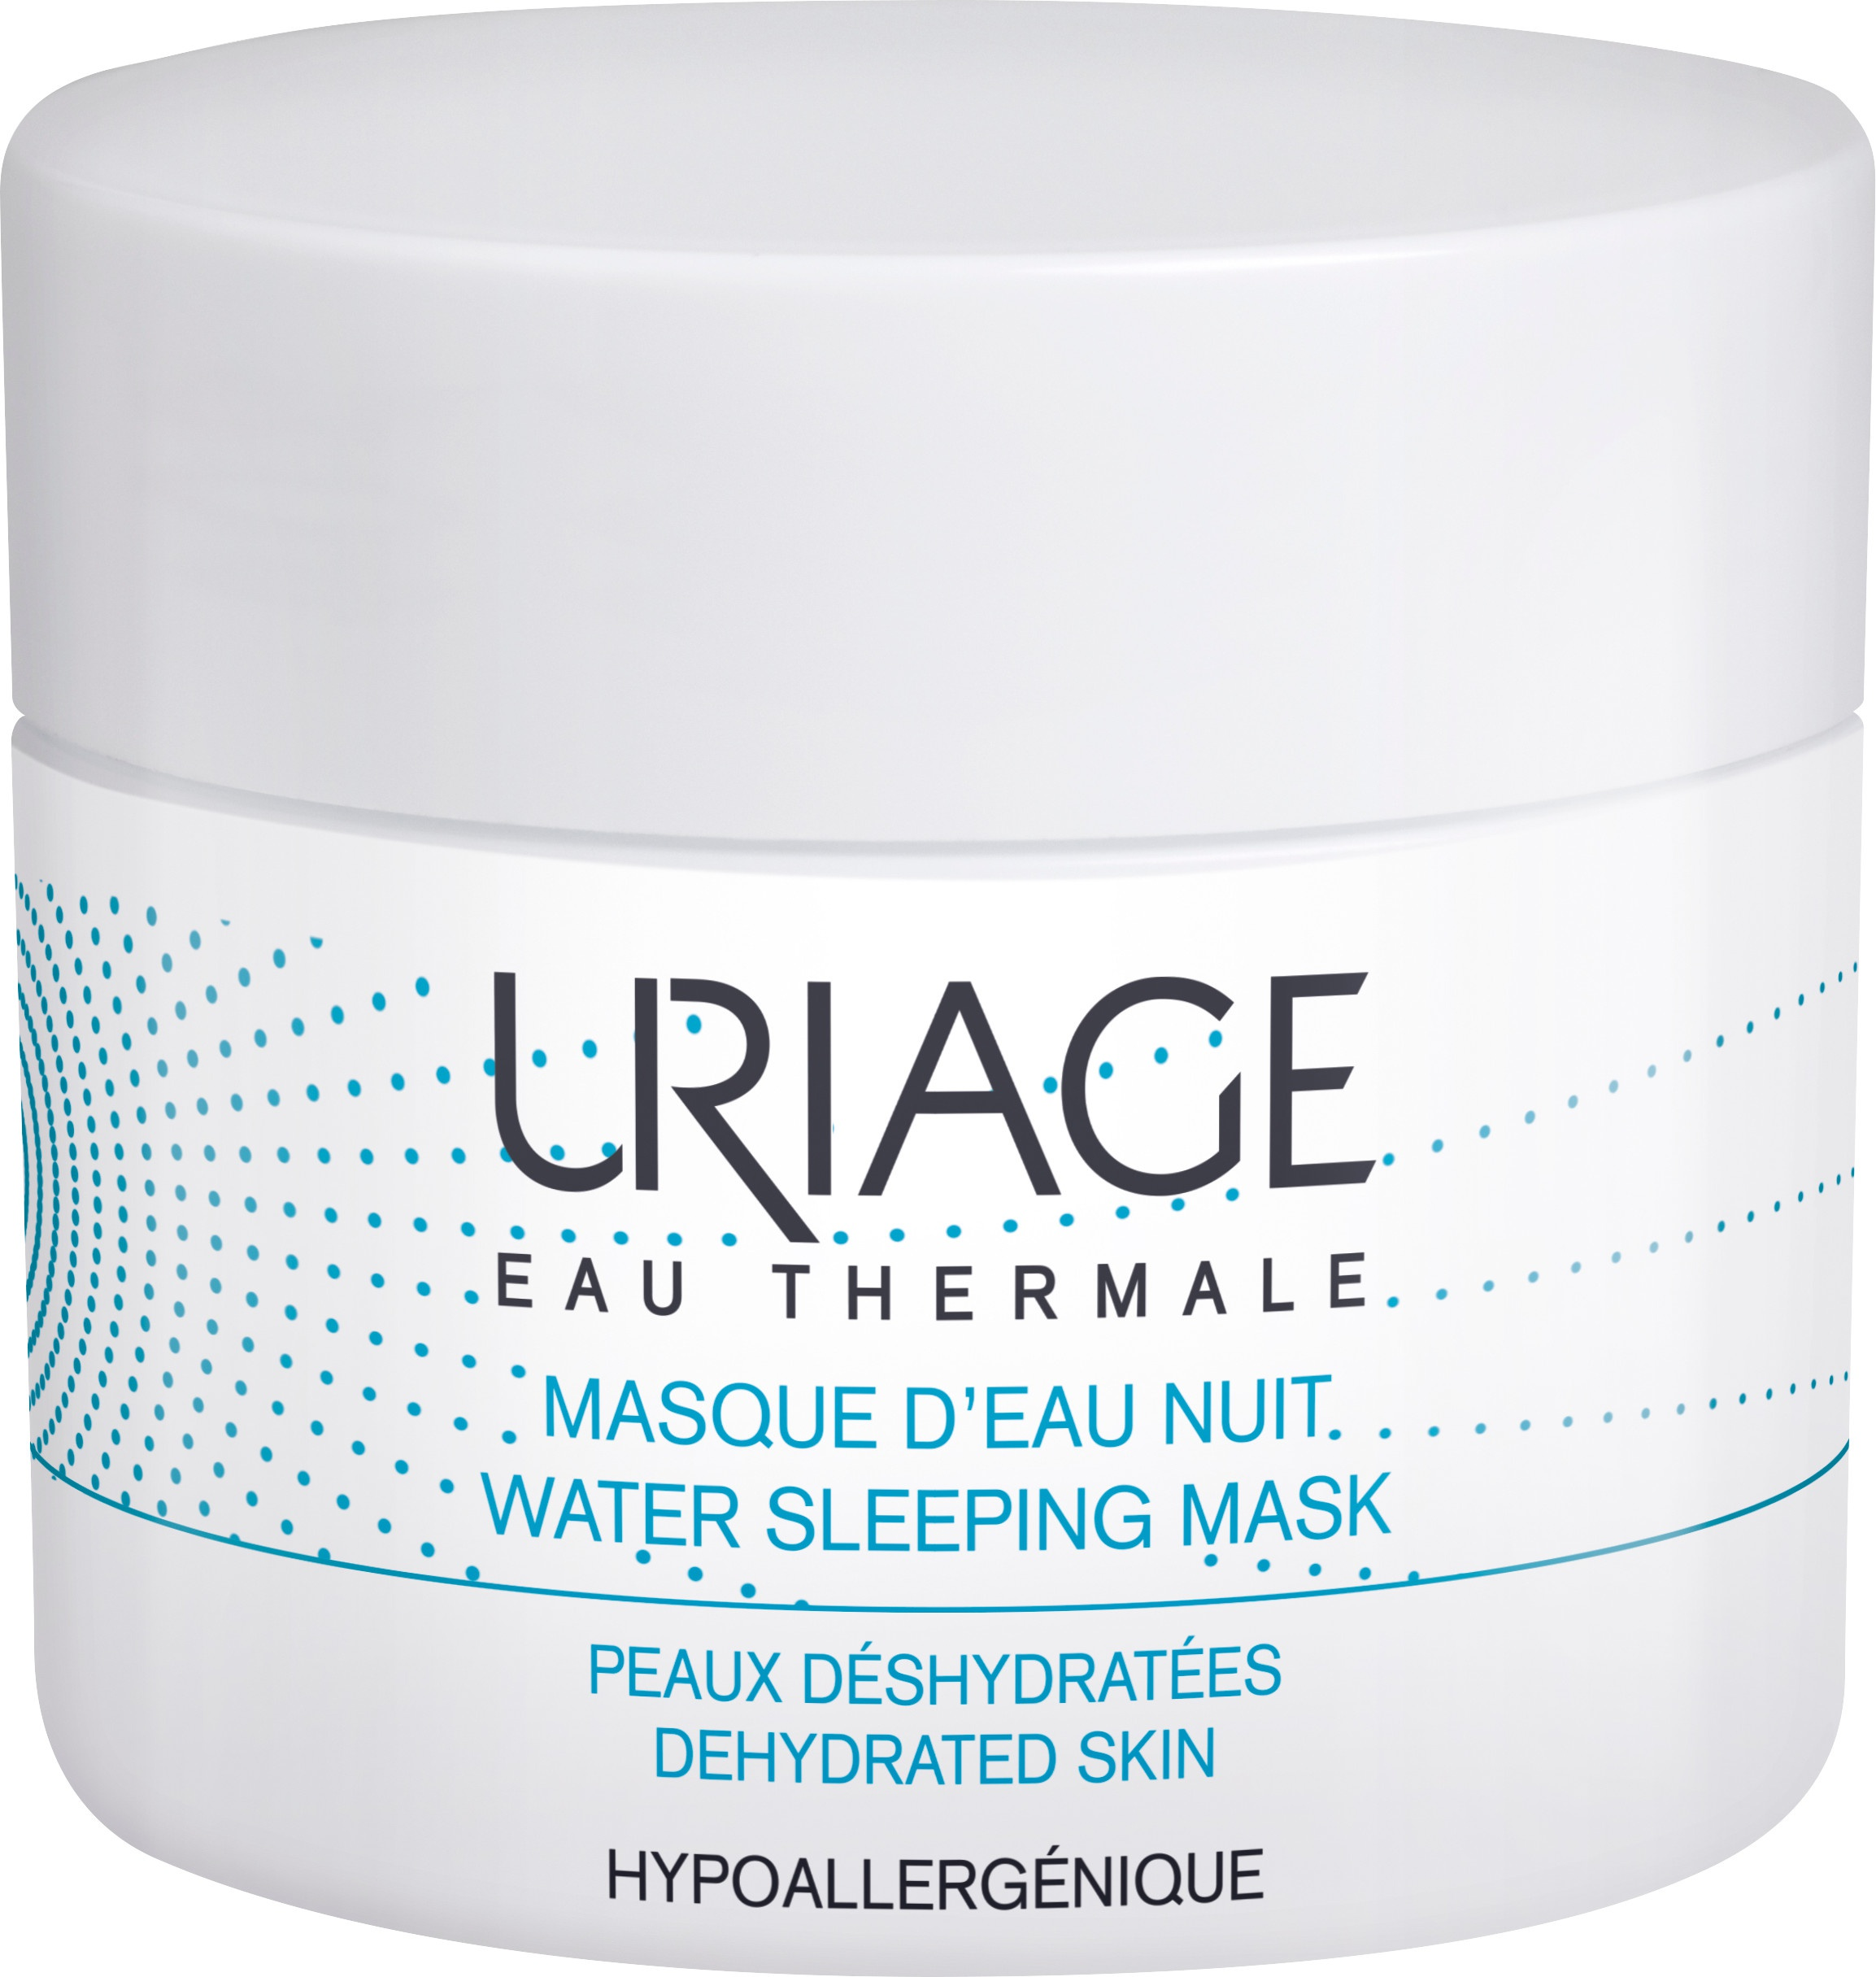 Uriage Eau Thermale - Water Night Mask